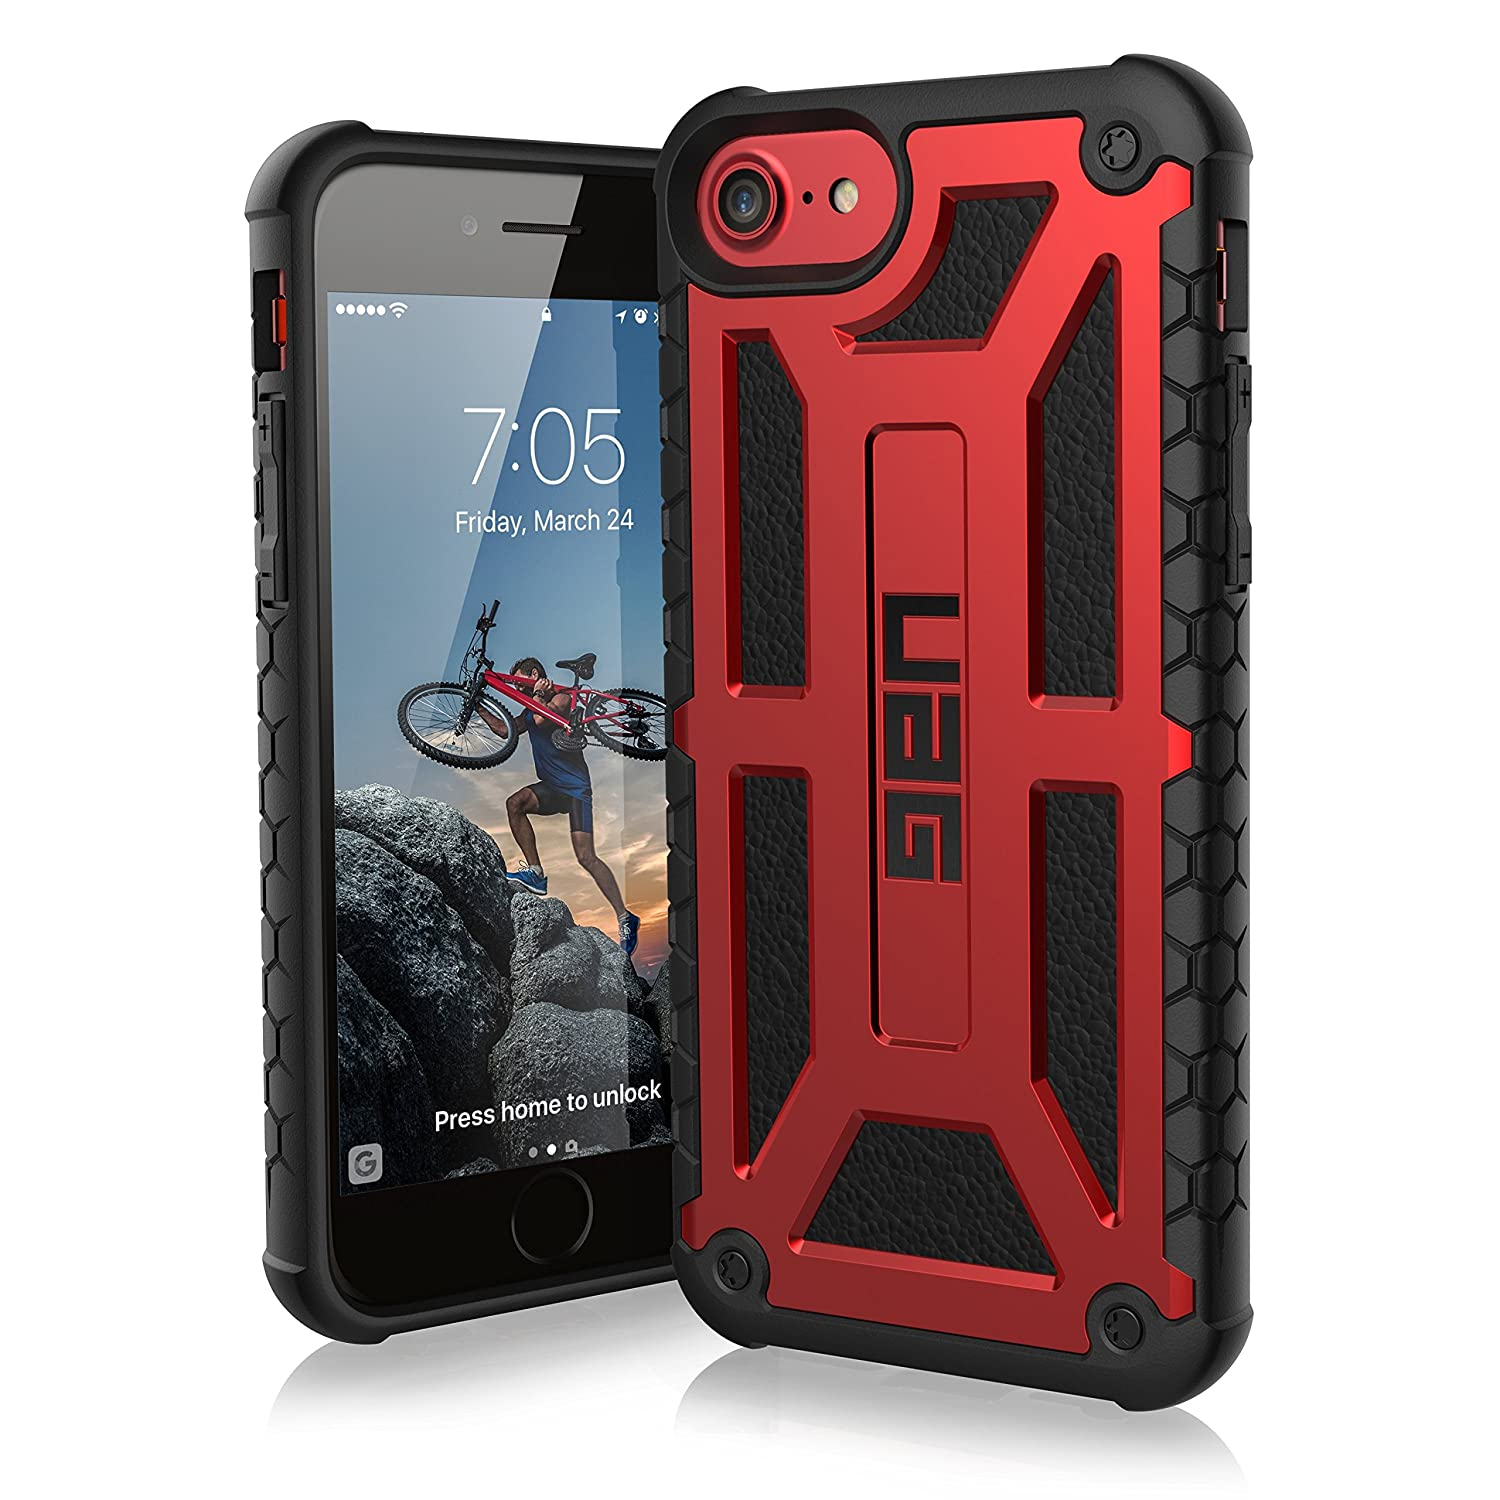 huge discount c1ca1 ed41f Details about UAG iPhone 8 7 6 6s 4.7-inch screen Monarch Rugged [CRIMSON]  Case Maga ICE